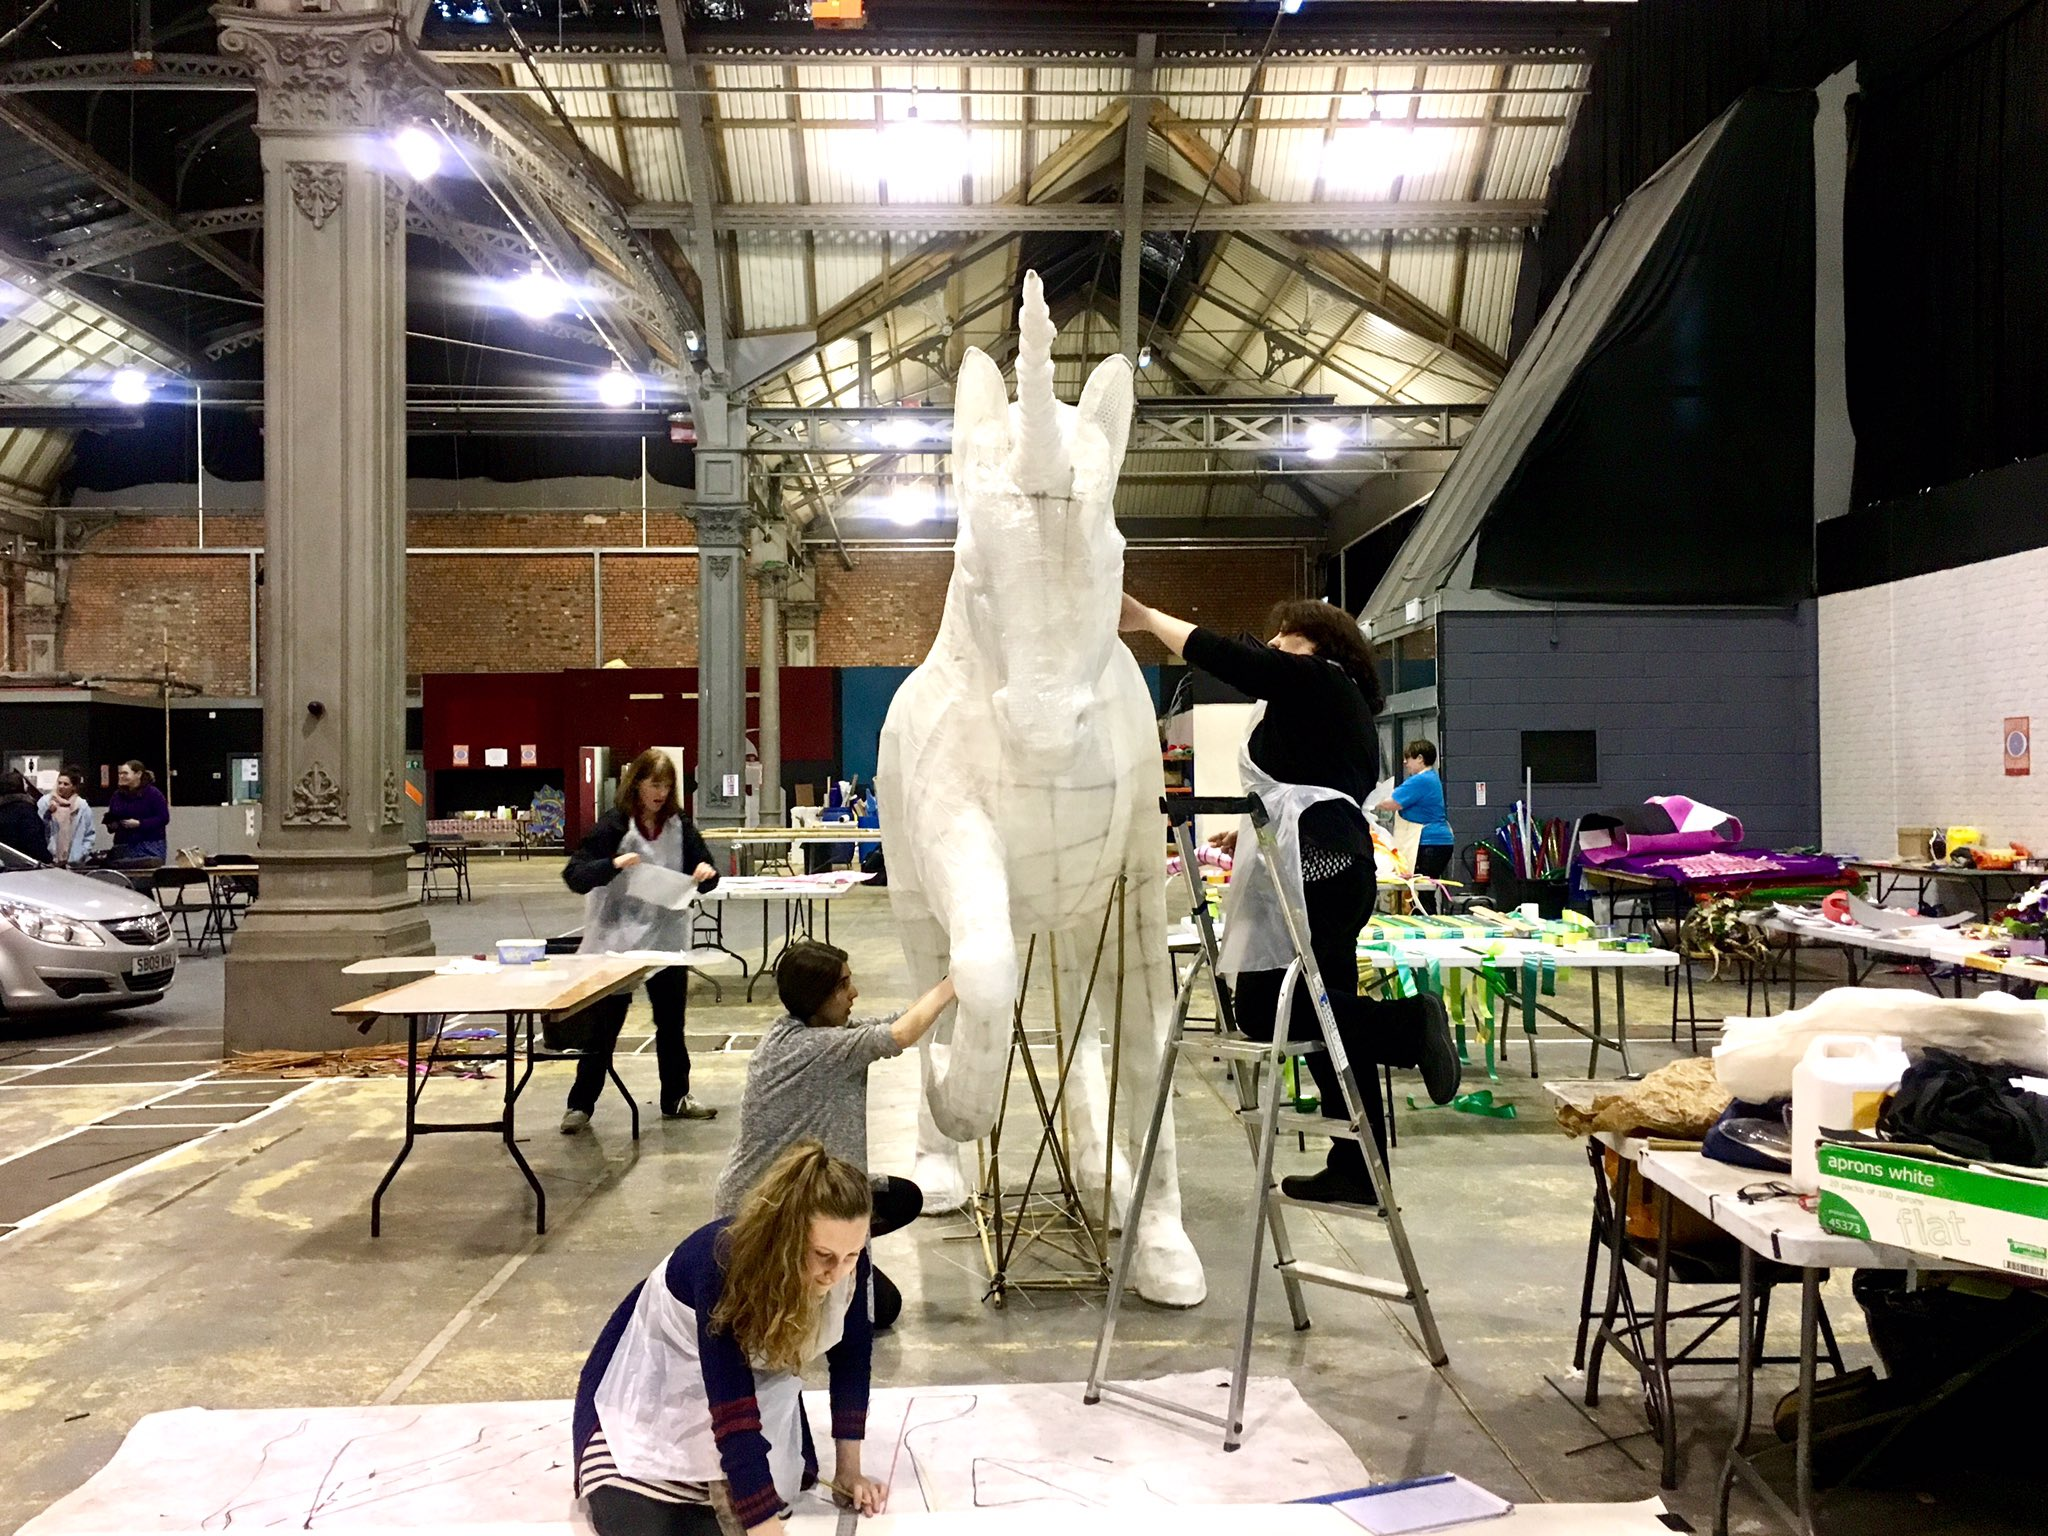 The WOW workshop is open today! #McrDay17 https://t.co/eEbef3CuXT